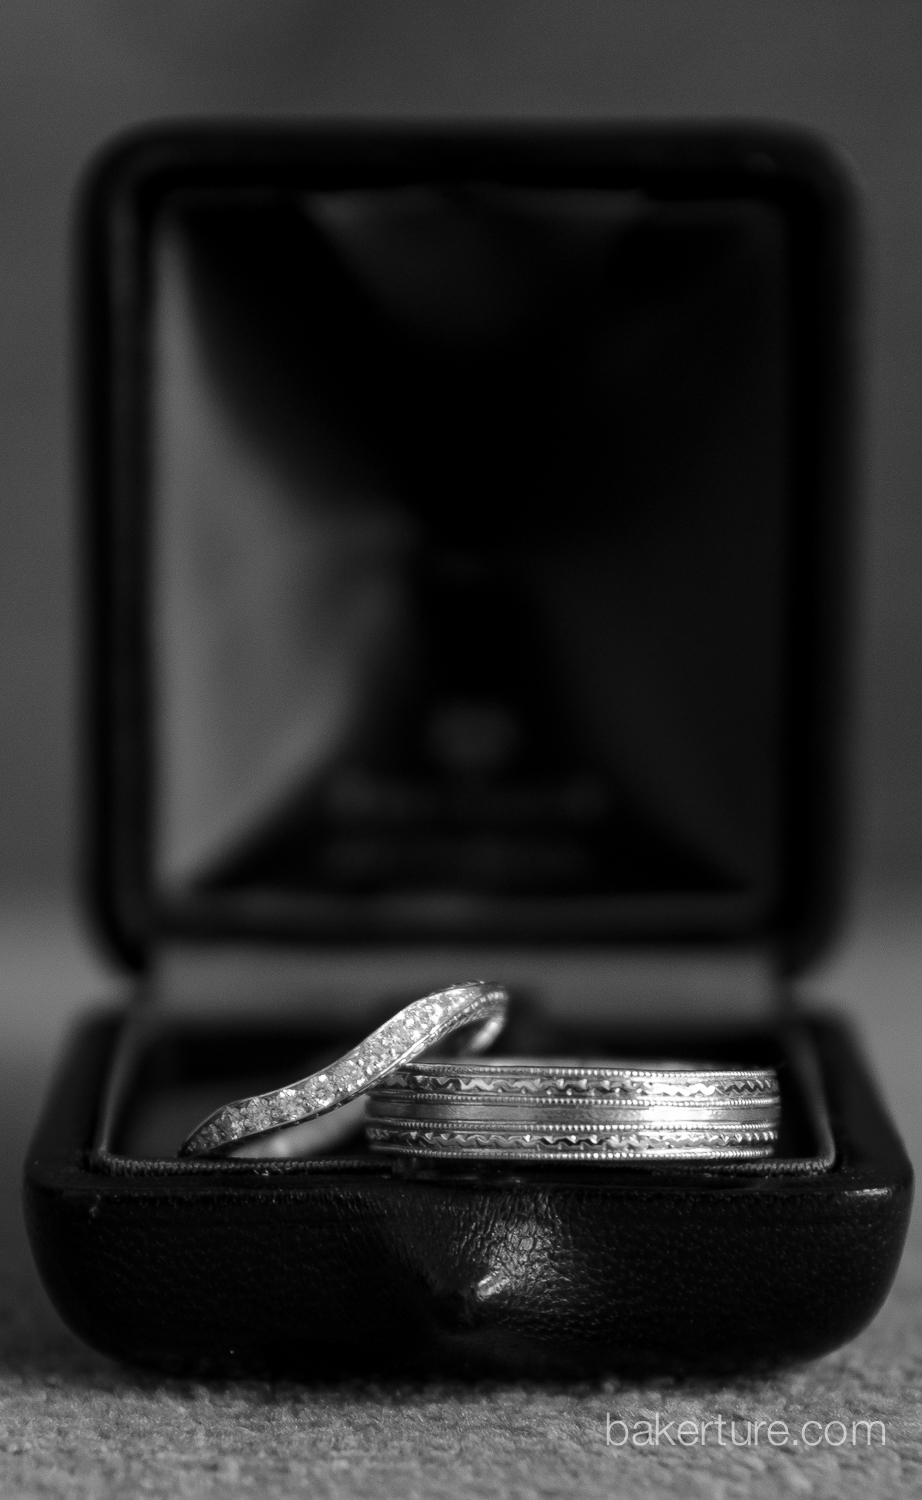 Walker's Overlook Wedding ring Photo